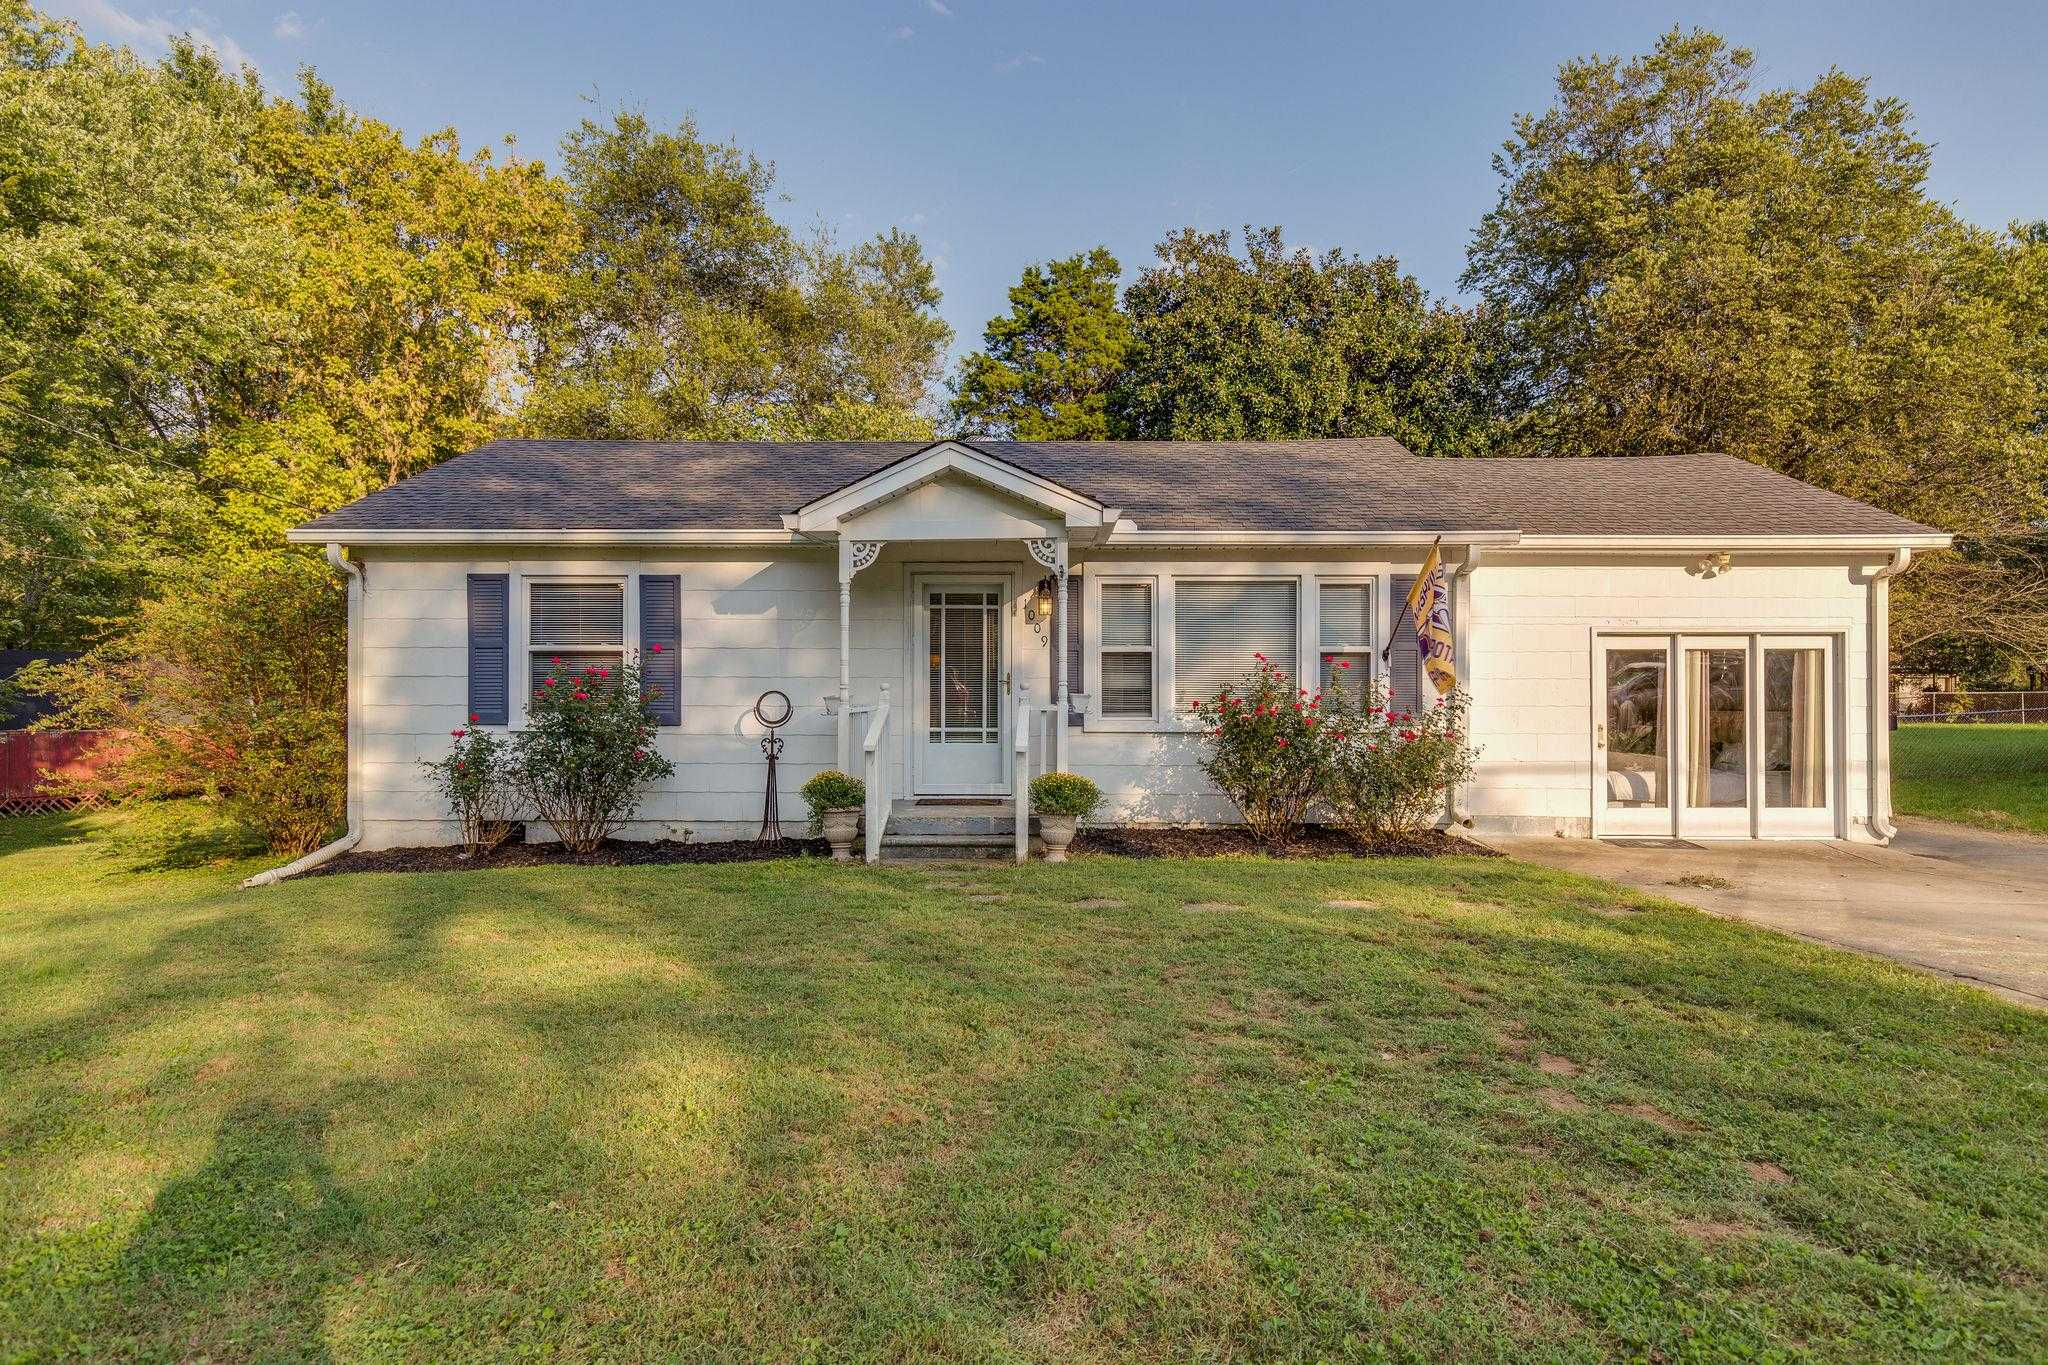 $159,900 - 3Br/1Ba -  for Sale in Highland Park, Gallatin